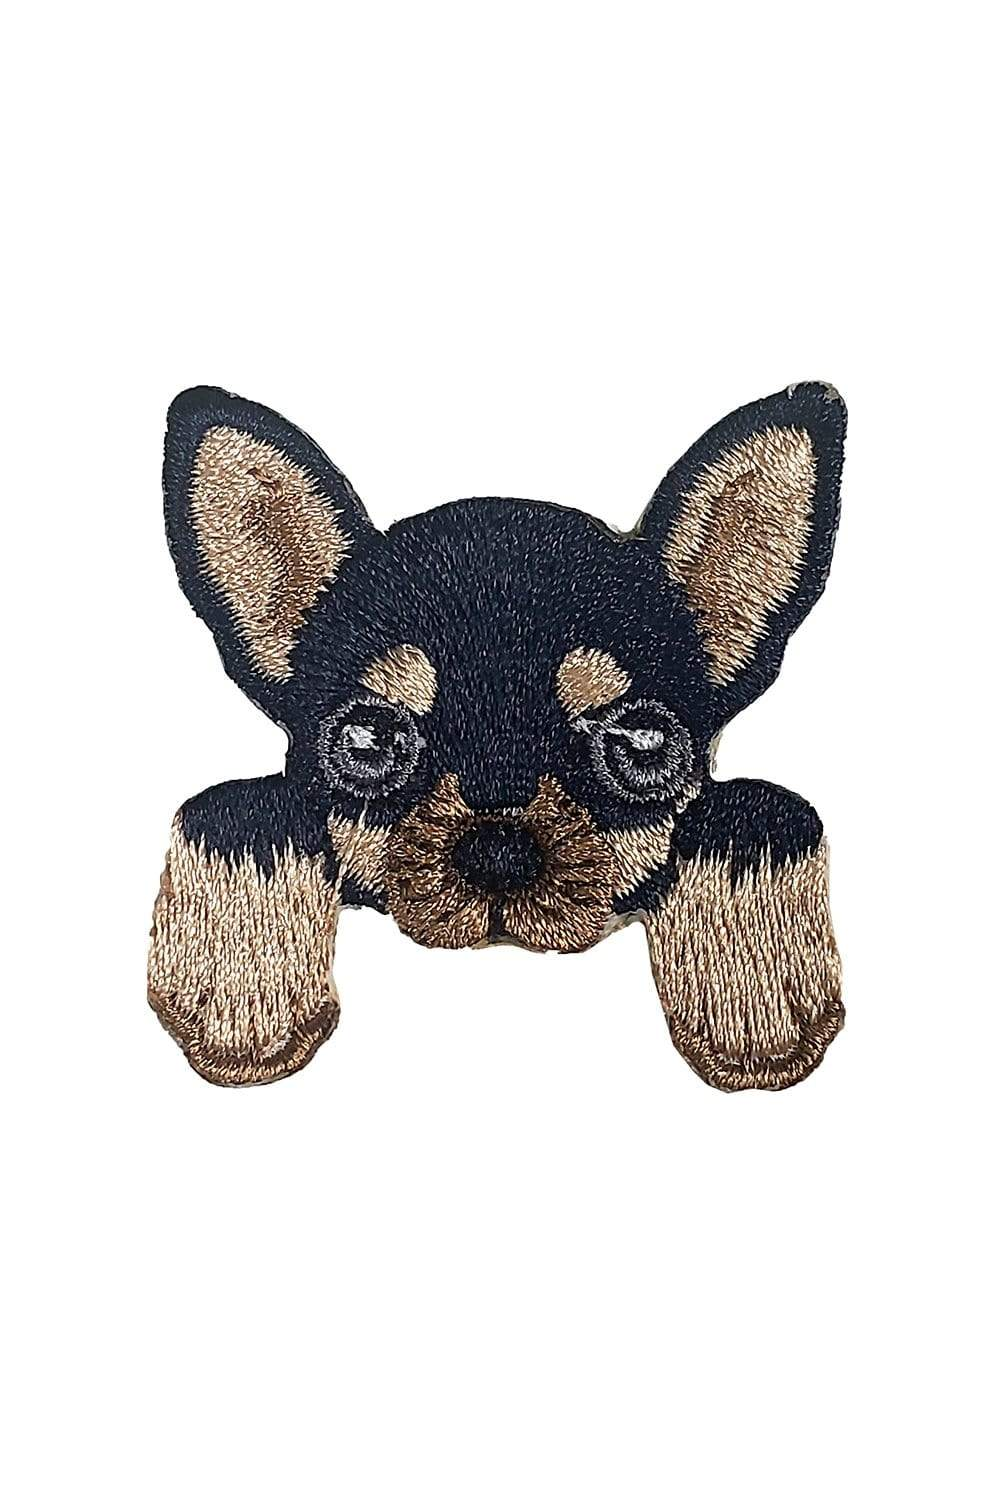 PATCHES Chihuahua - Chloe Dao